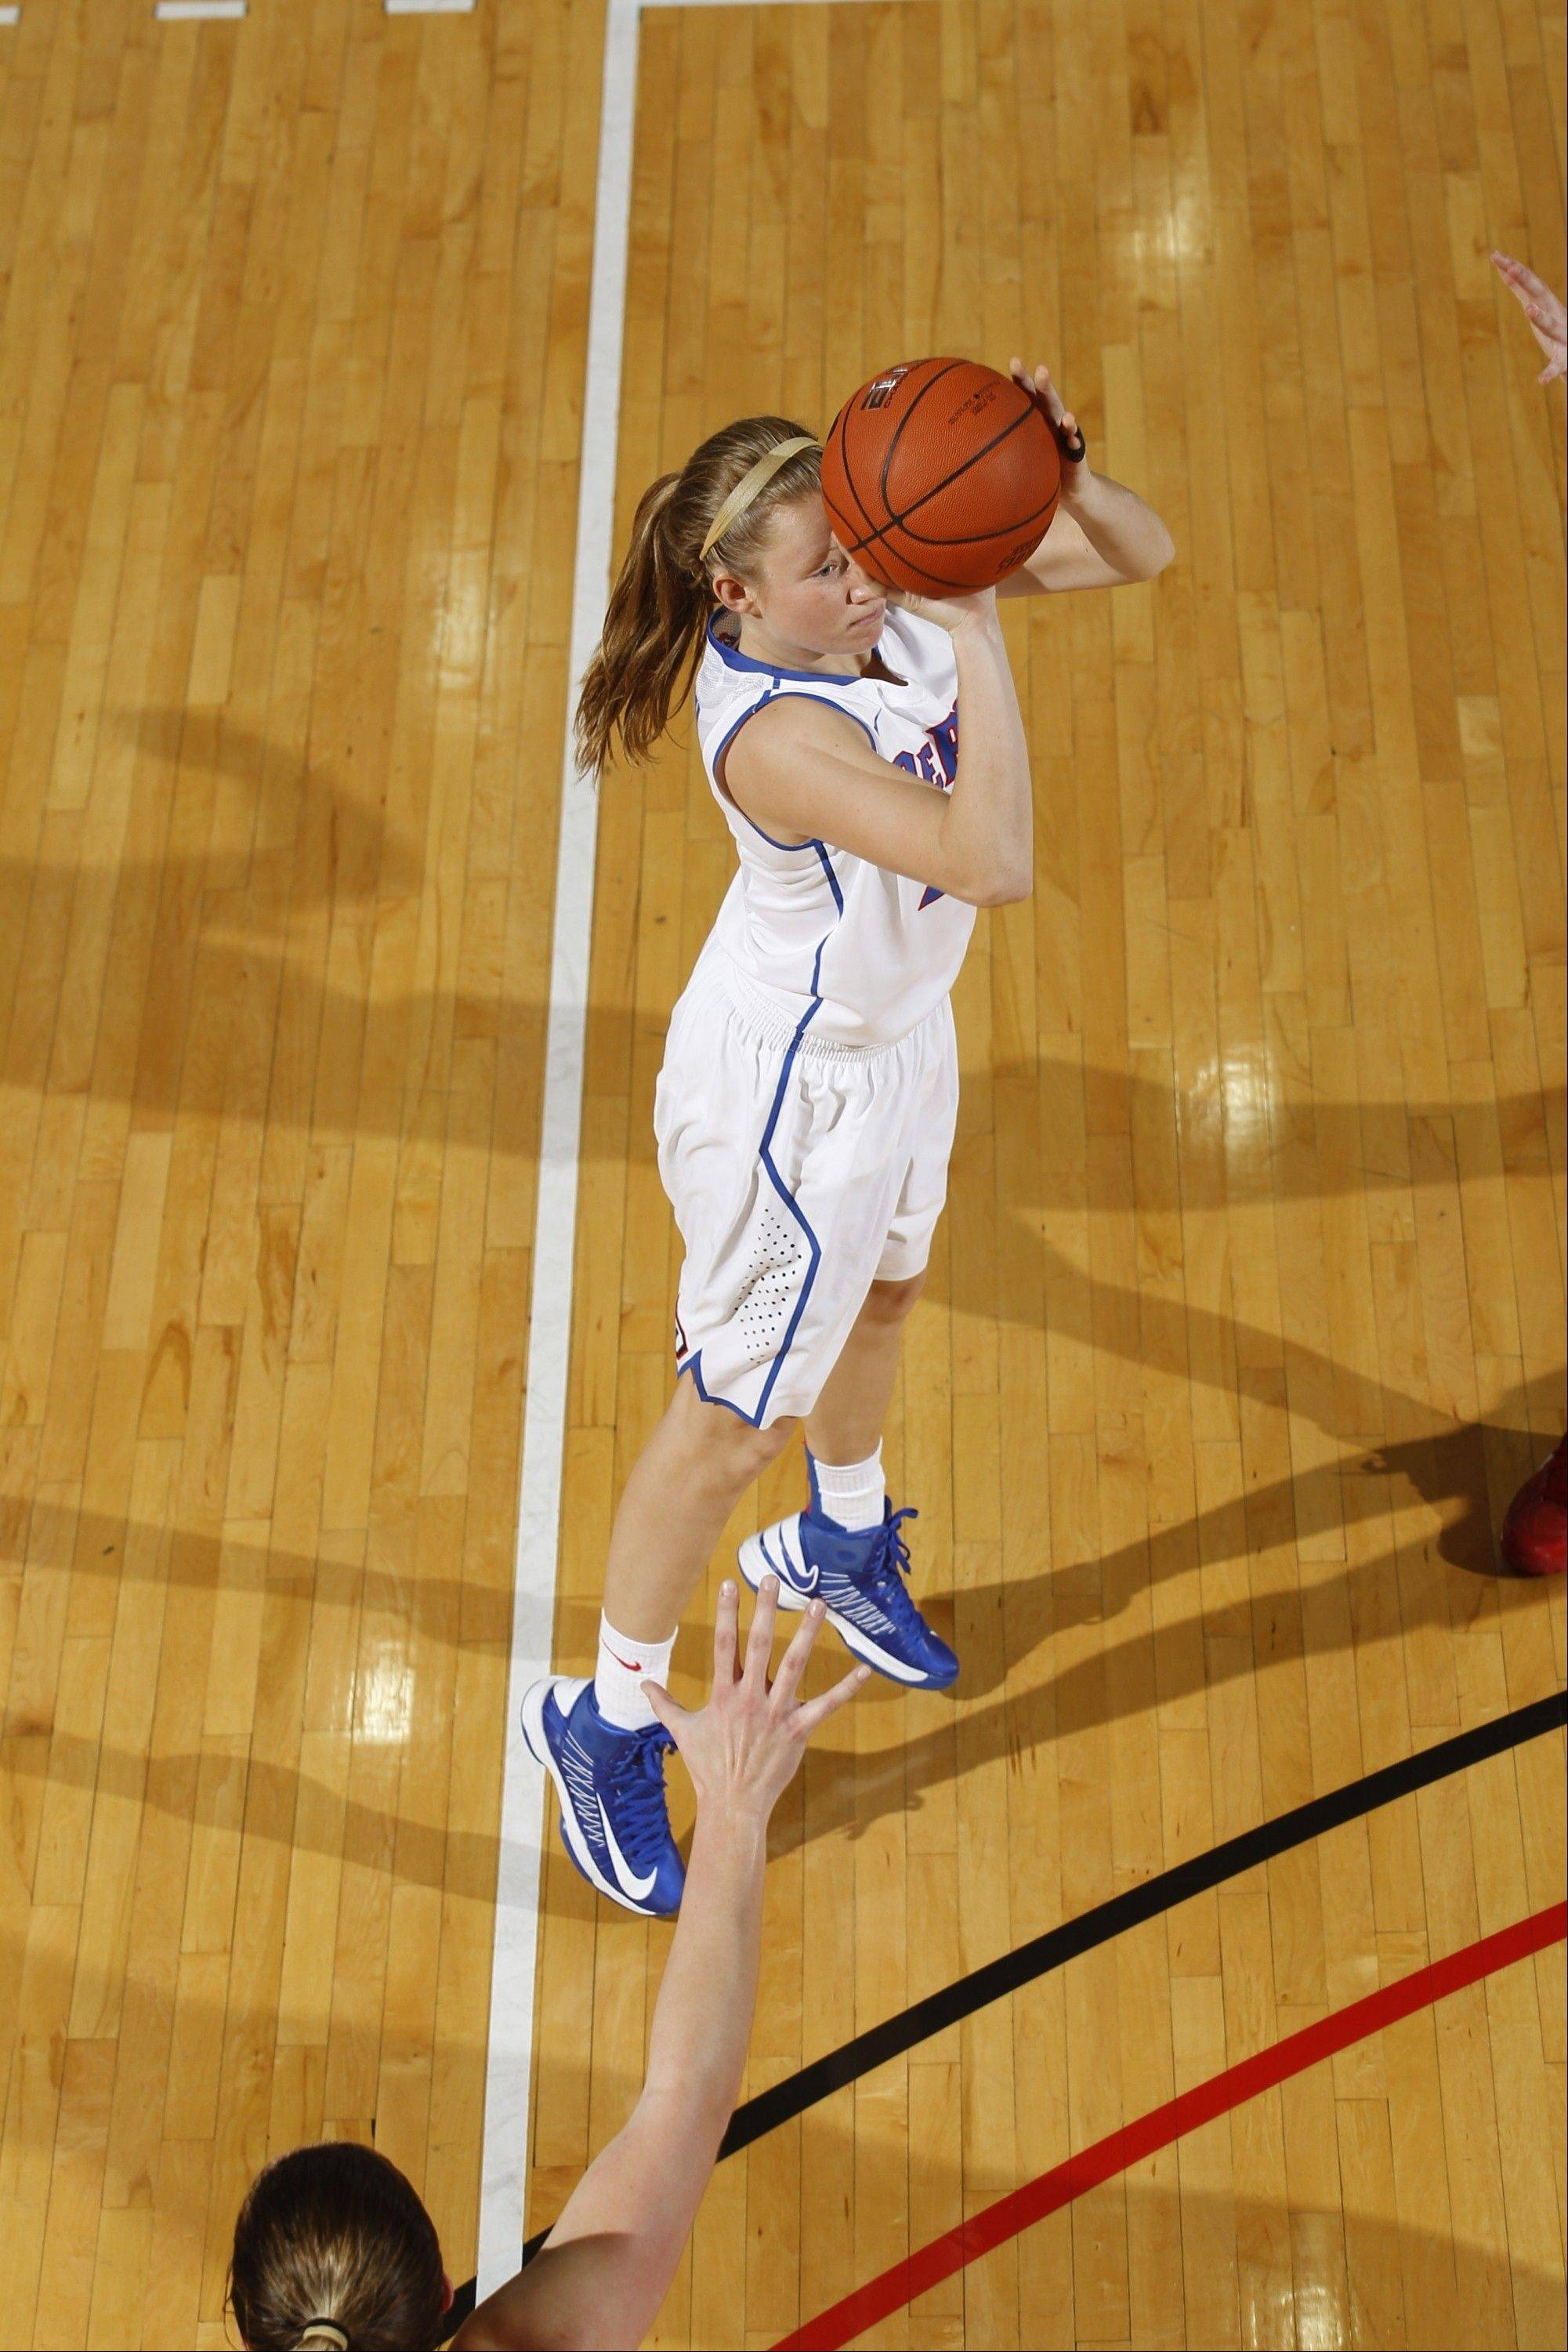 Former Hersey star Megan Rogowski of DePaul will be sidelined with a broken hand, head coach Doug Bruno said Wednesday. Rogowski had hit 22 three-point baskets for the Blue Demons this season.